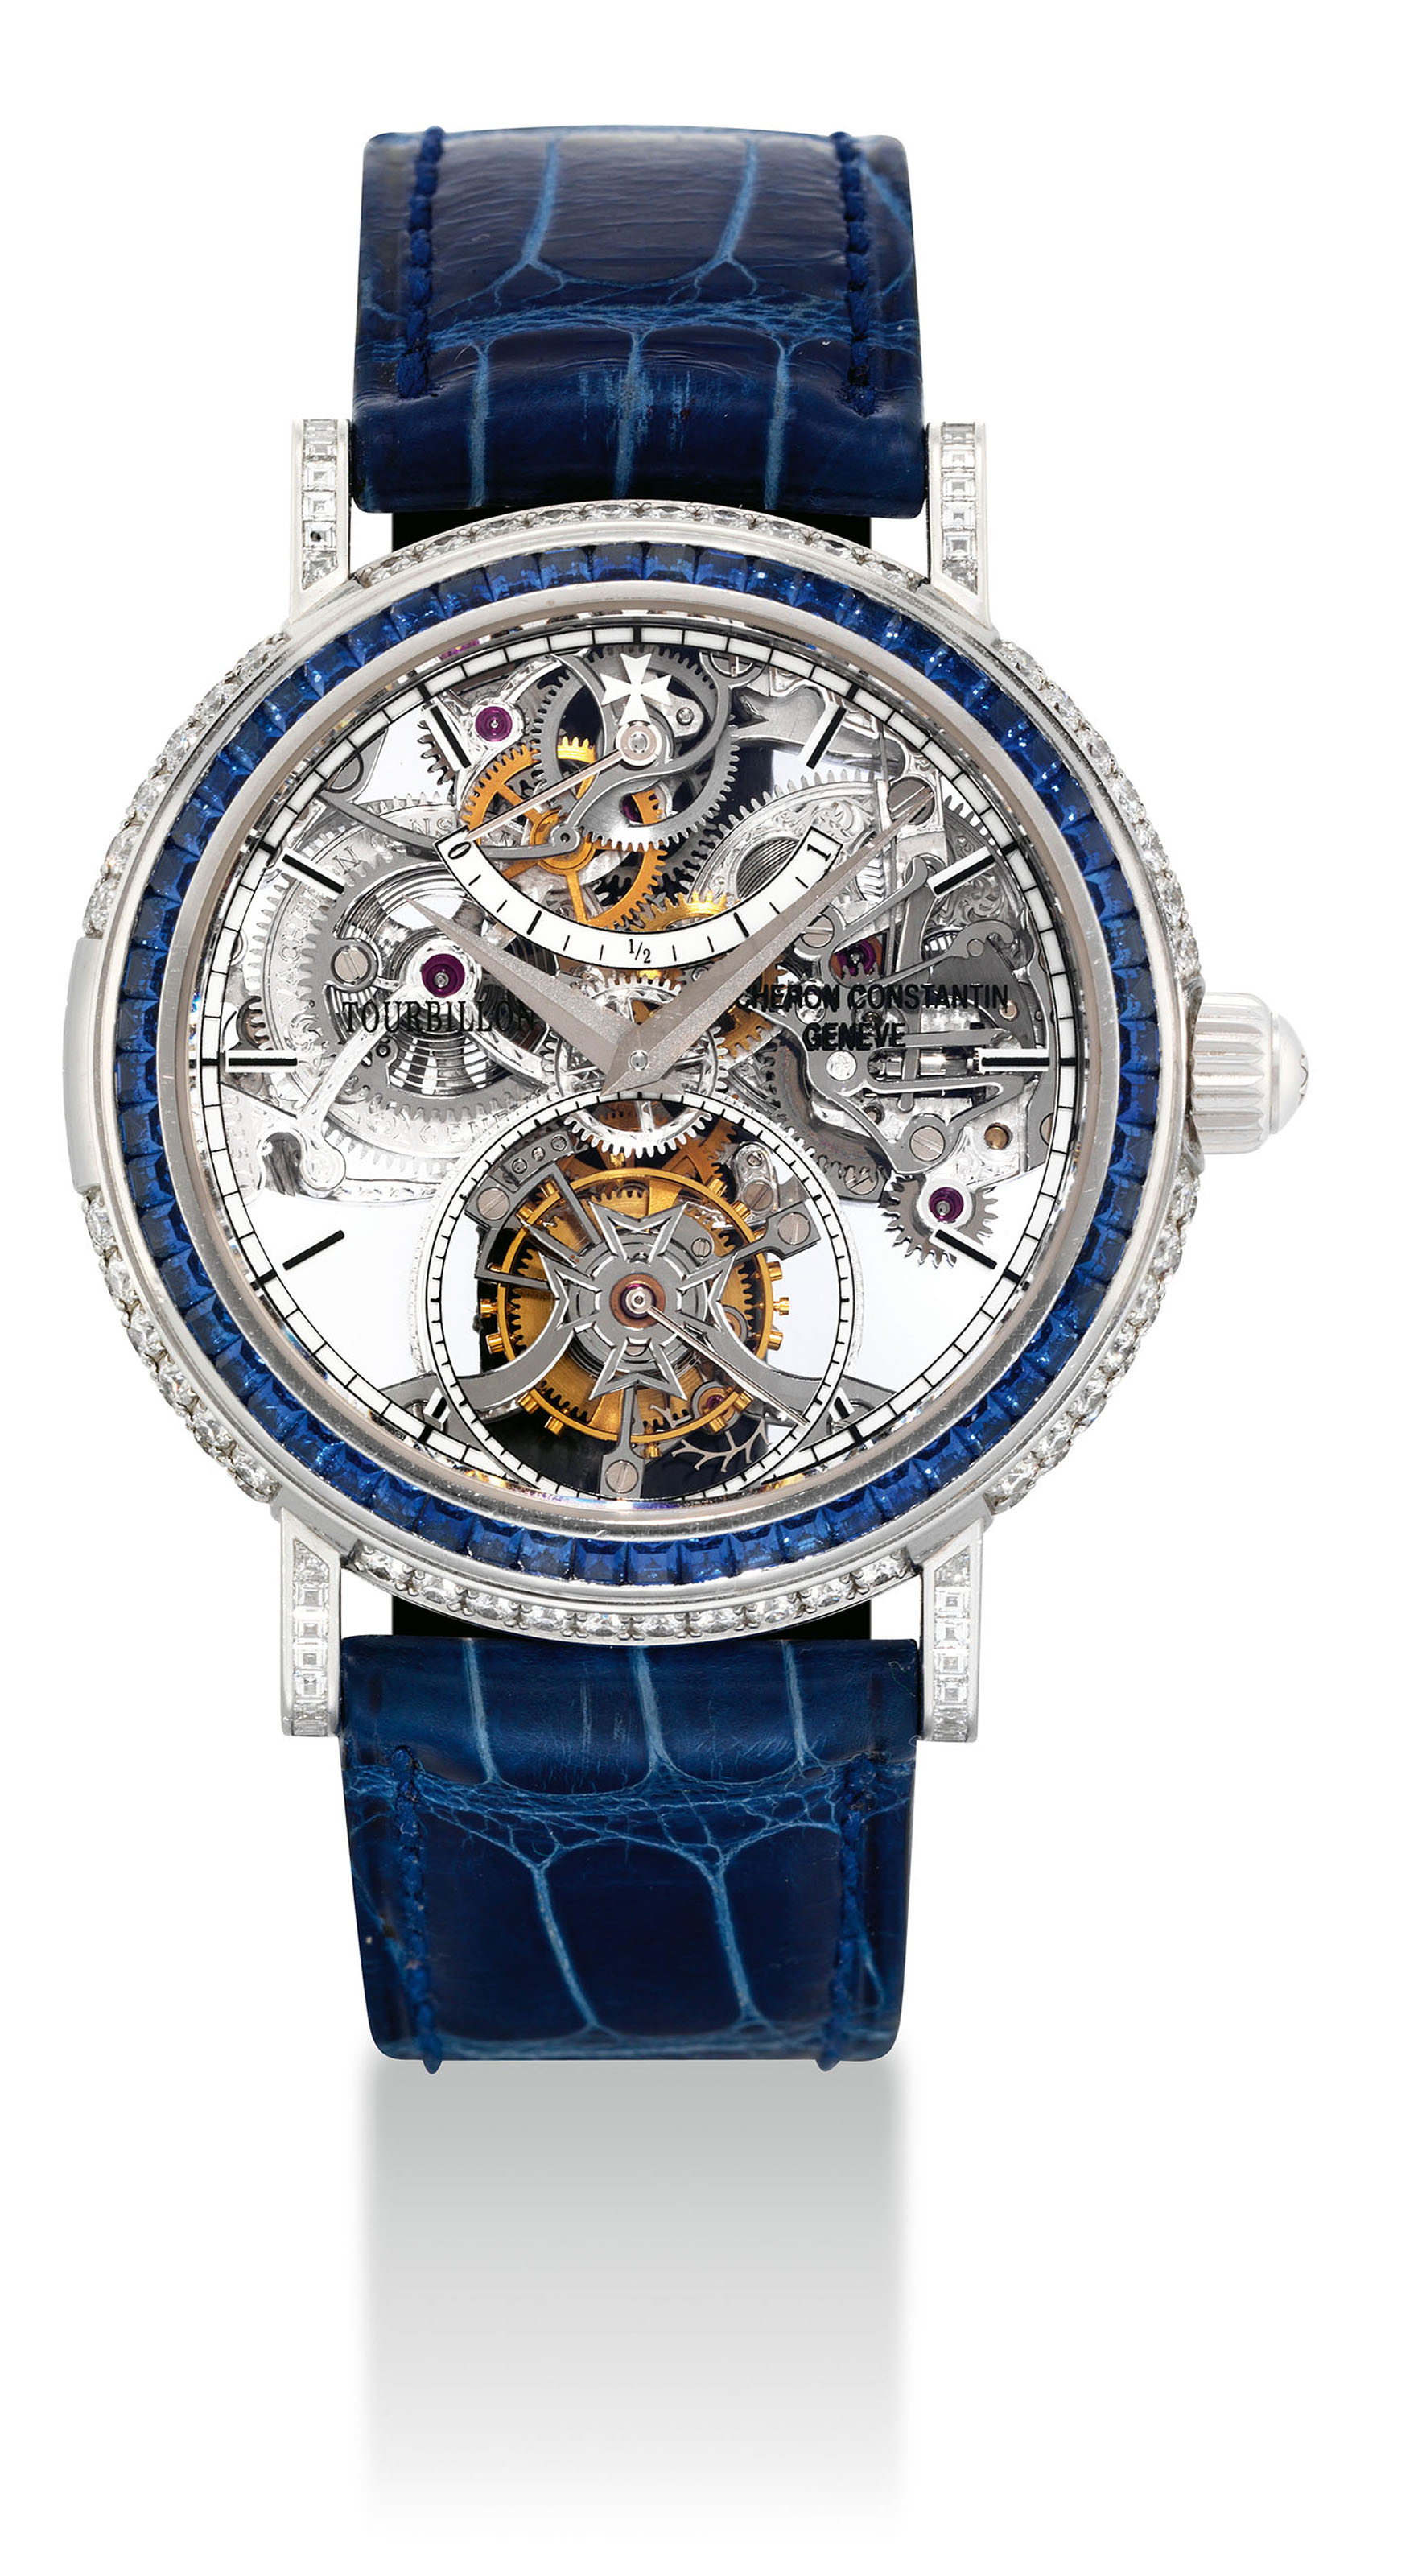 VACHERON CONSTANTIN. A VERY FINE AND UNIQUE PLATINUM, DIAMOND AND SAPPHIRE-SET SKELETONISED TOURBILLON WRISTWATCH WITH POWER RESERVE